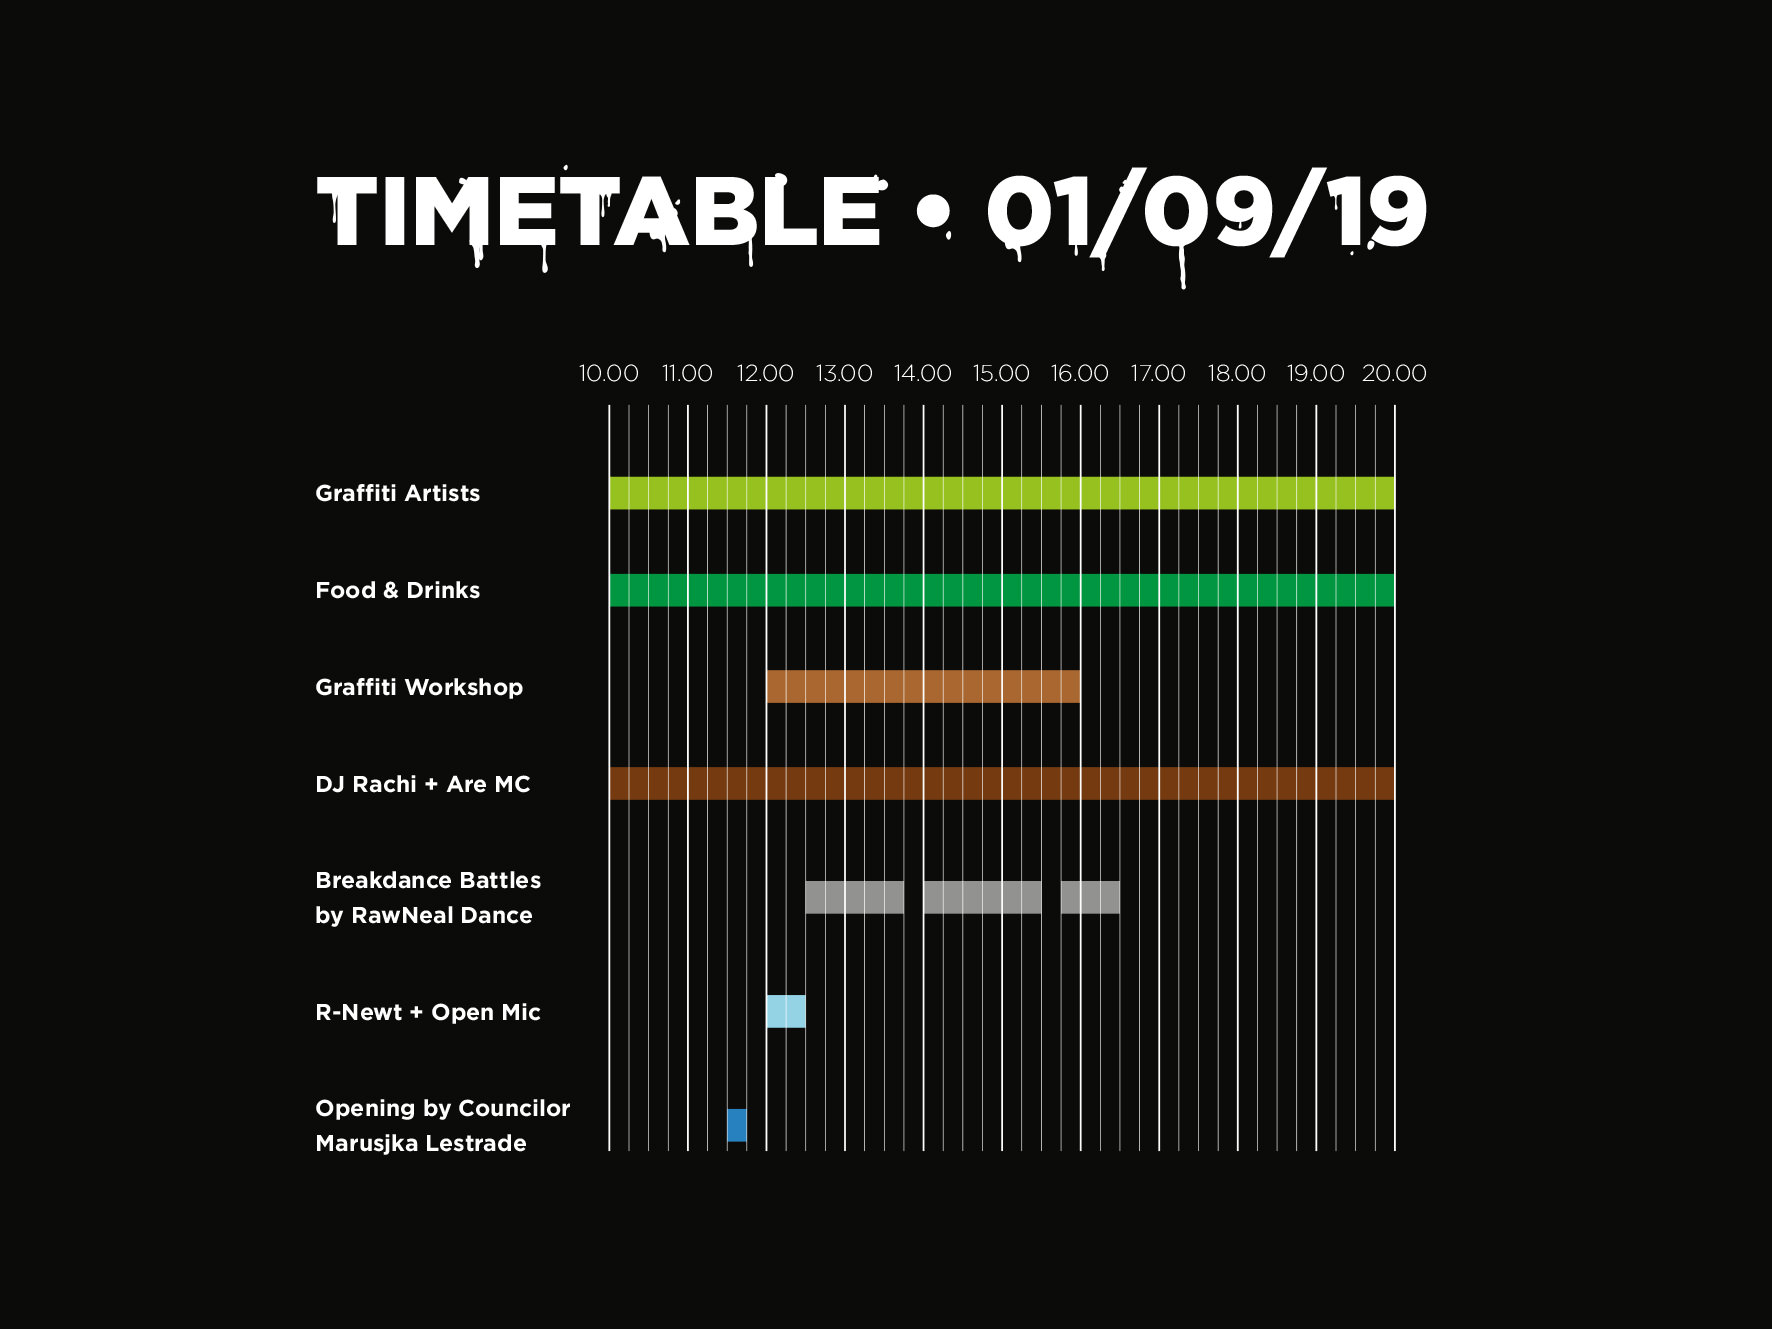 Timetable Edition 4.0